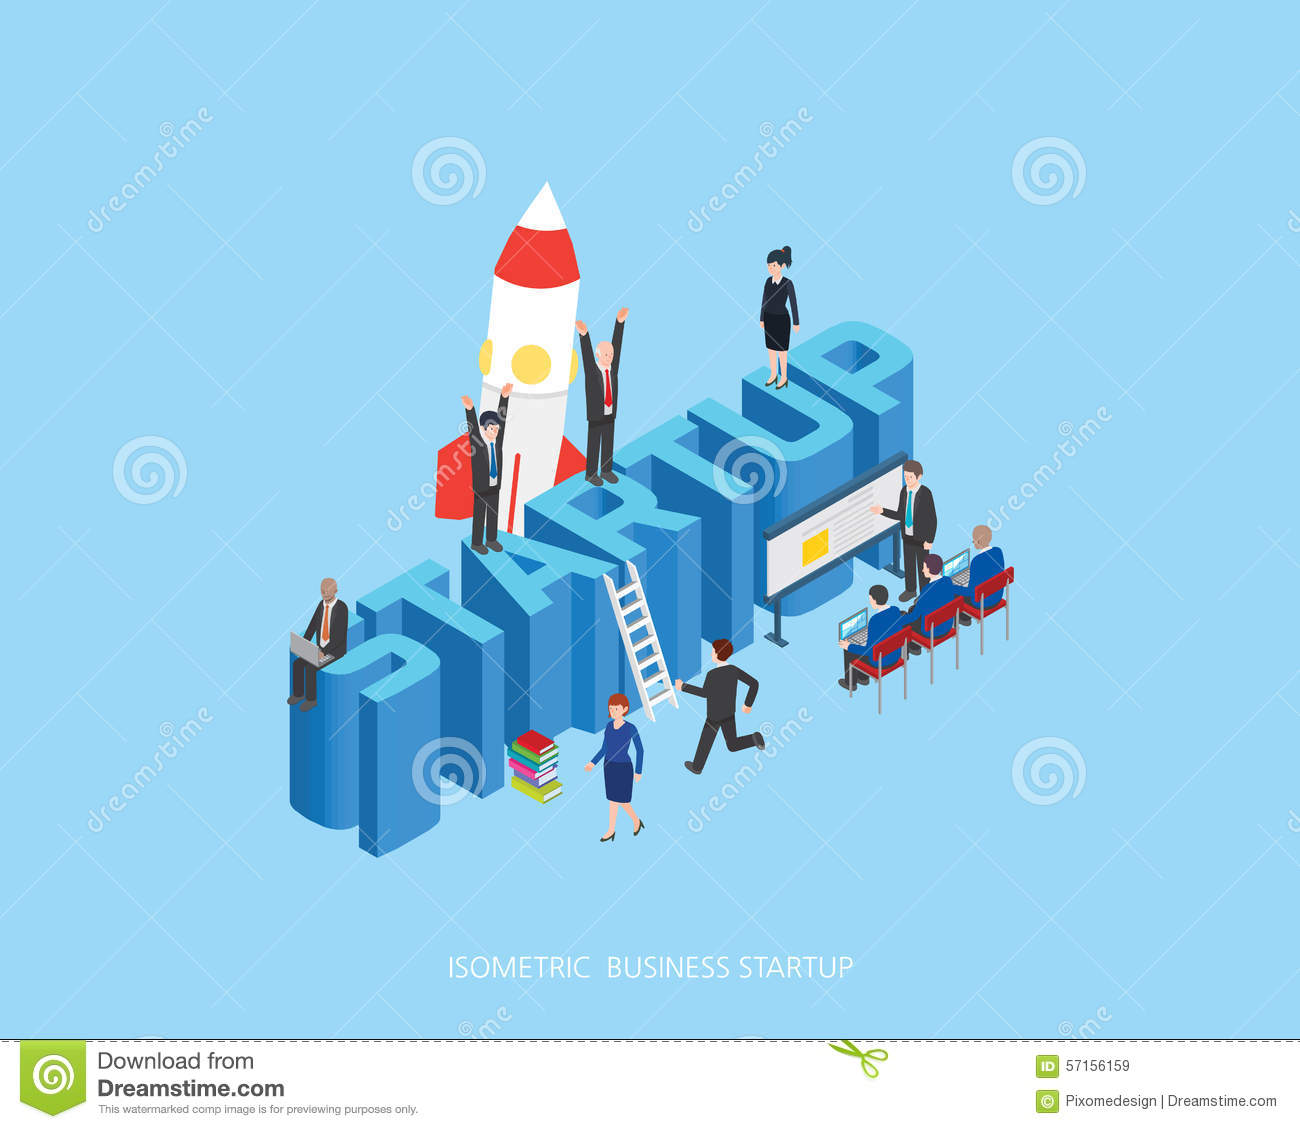 Flat 3d isometric illustration stark up concept design for 3d flat design online